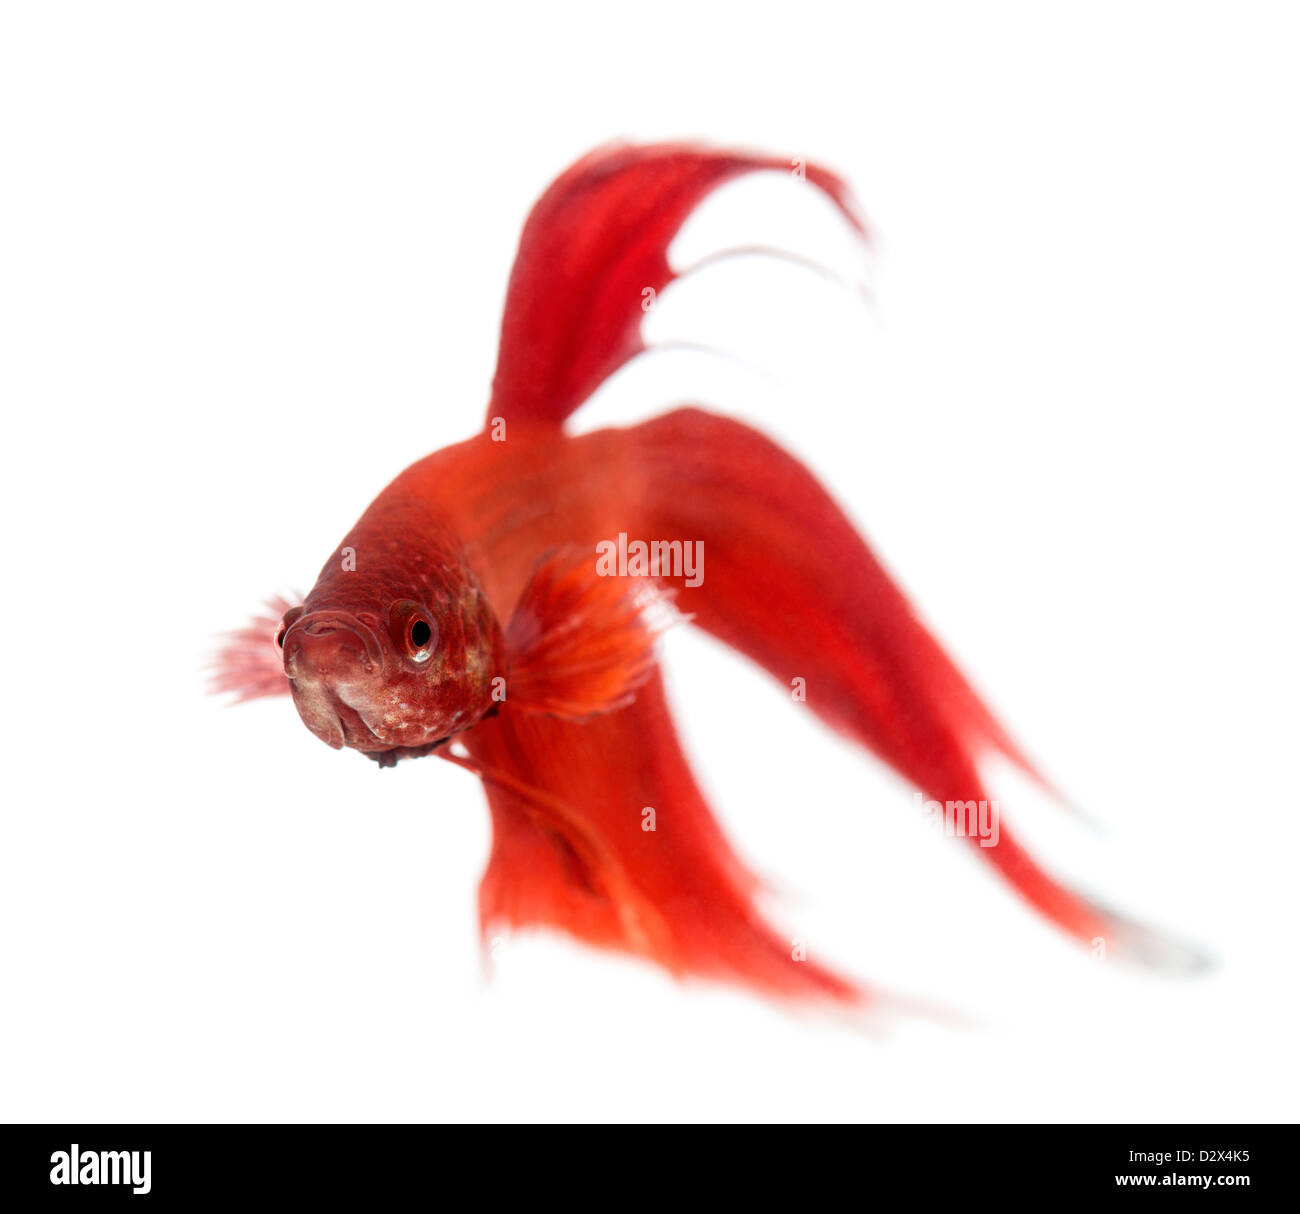 Front view of a Siamese fighting fish, Betta splendens, against white background - Stock Image